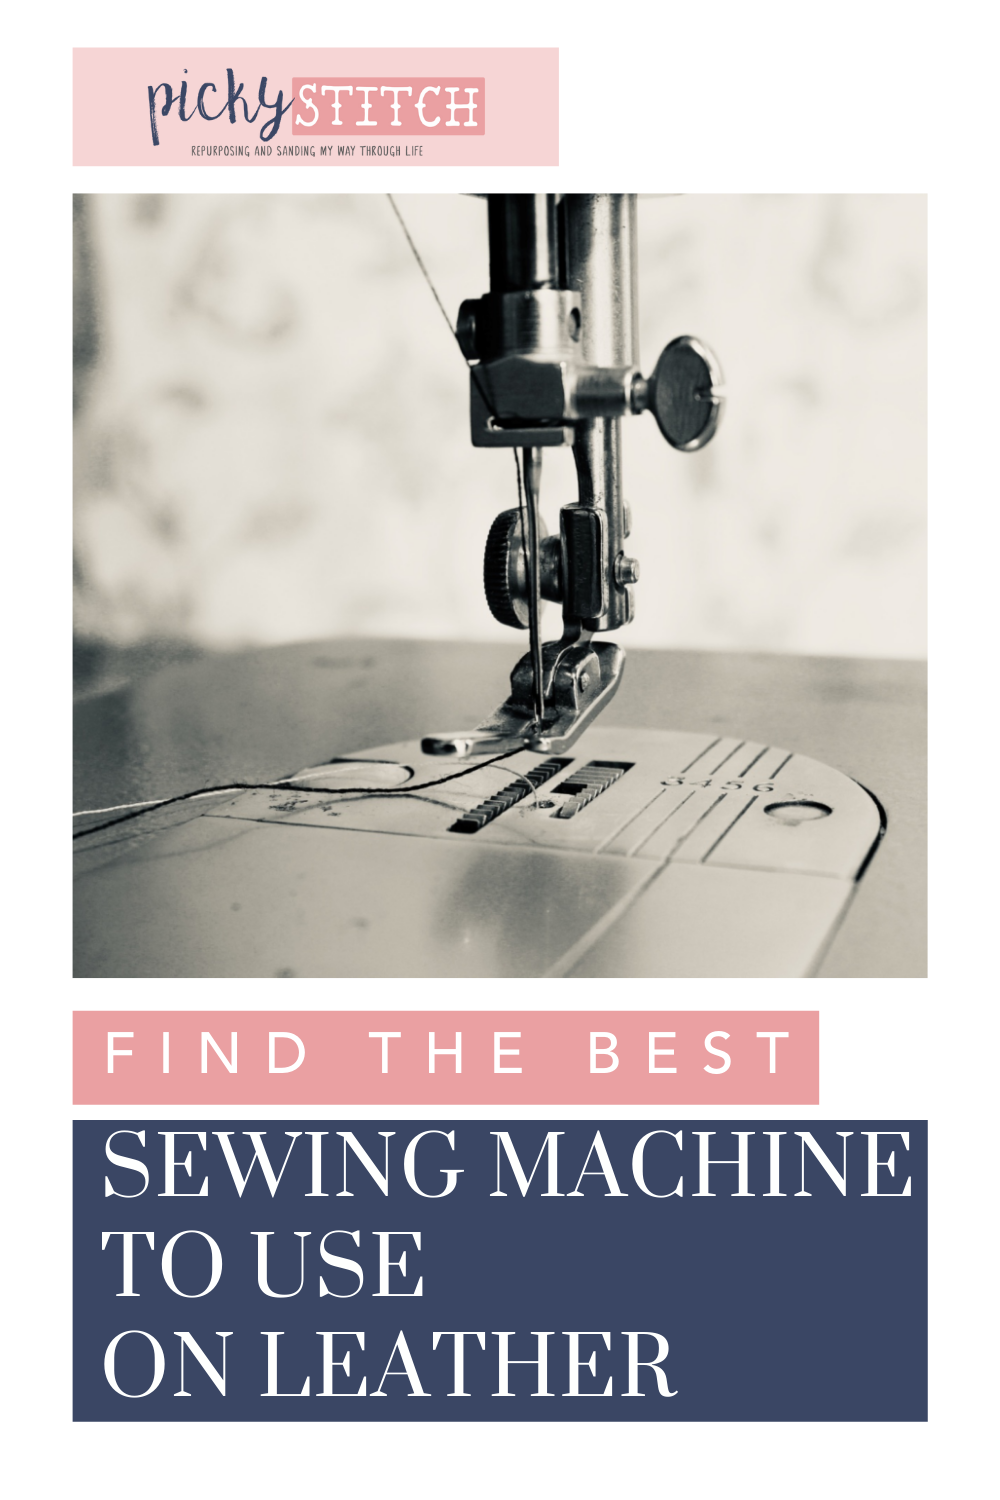 Pickystitch.com is the mecca of crafts! Find project ideas, tips, and more! Get started by learning the best sewing machine to use for your leather sewing projects!